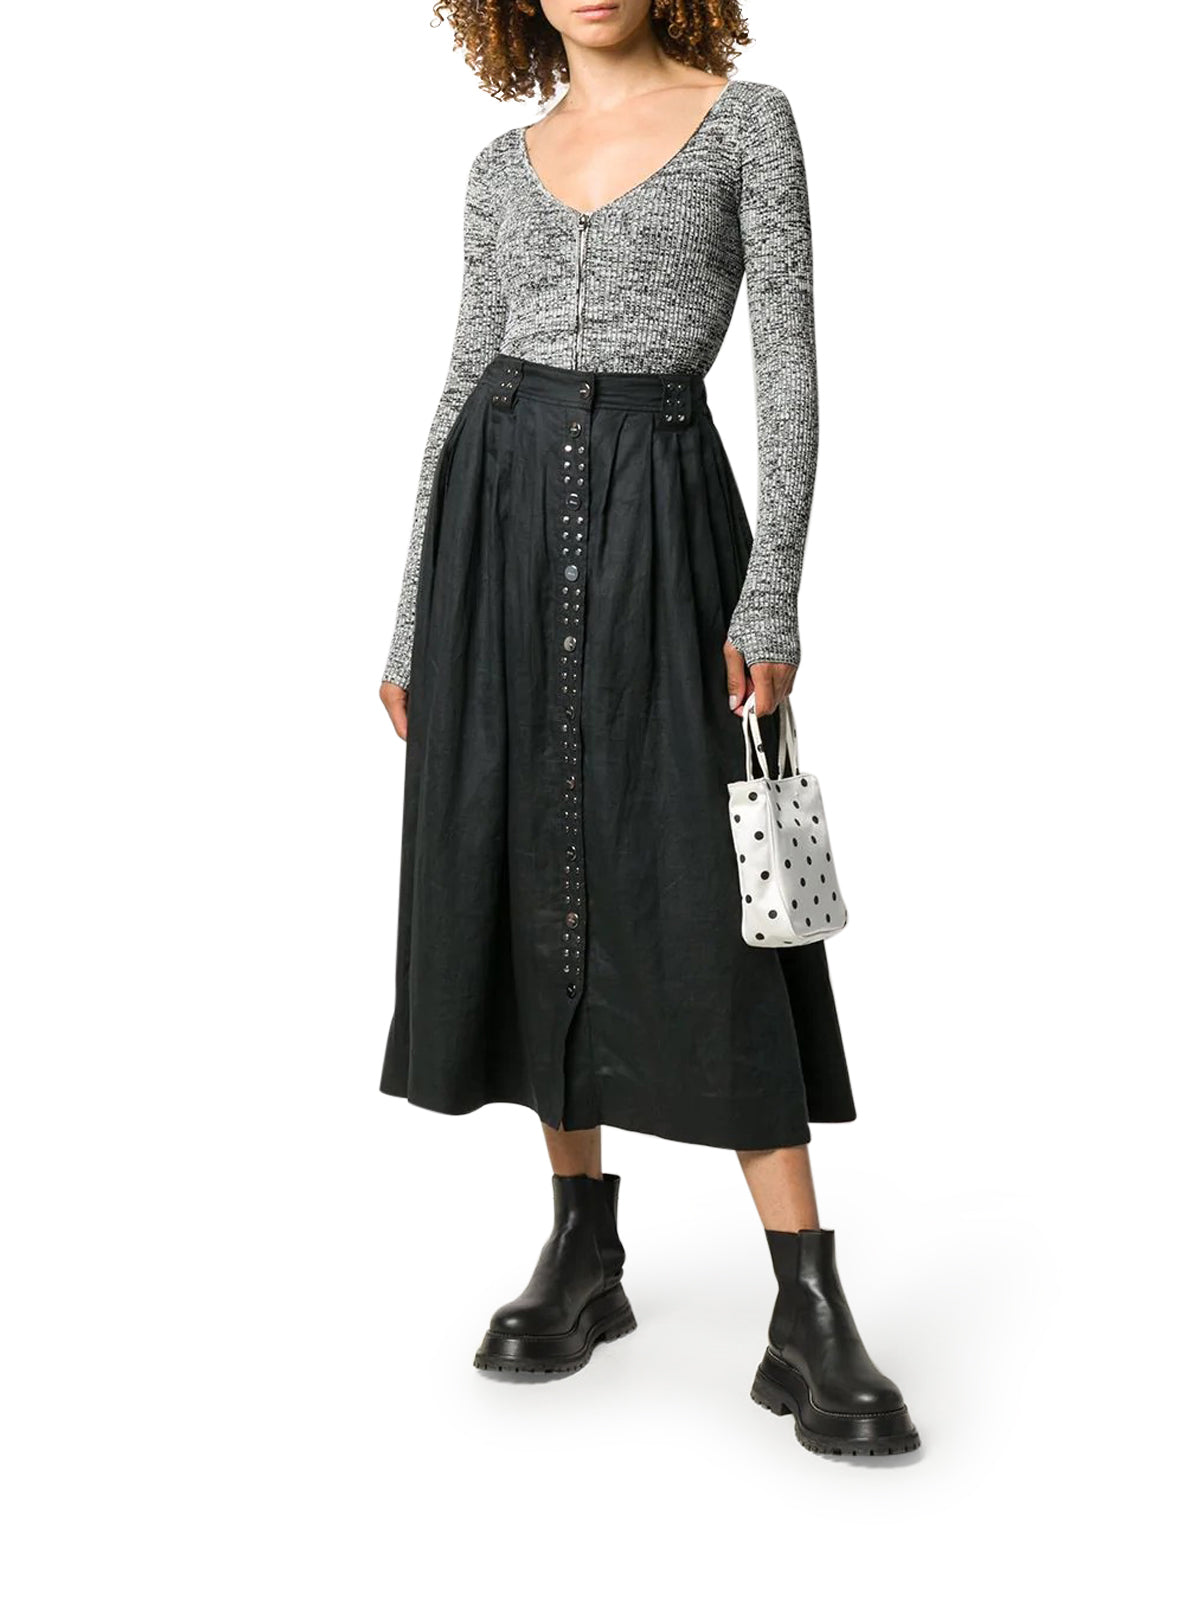 Midi skirt with studs